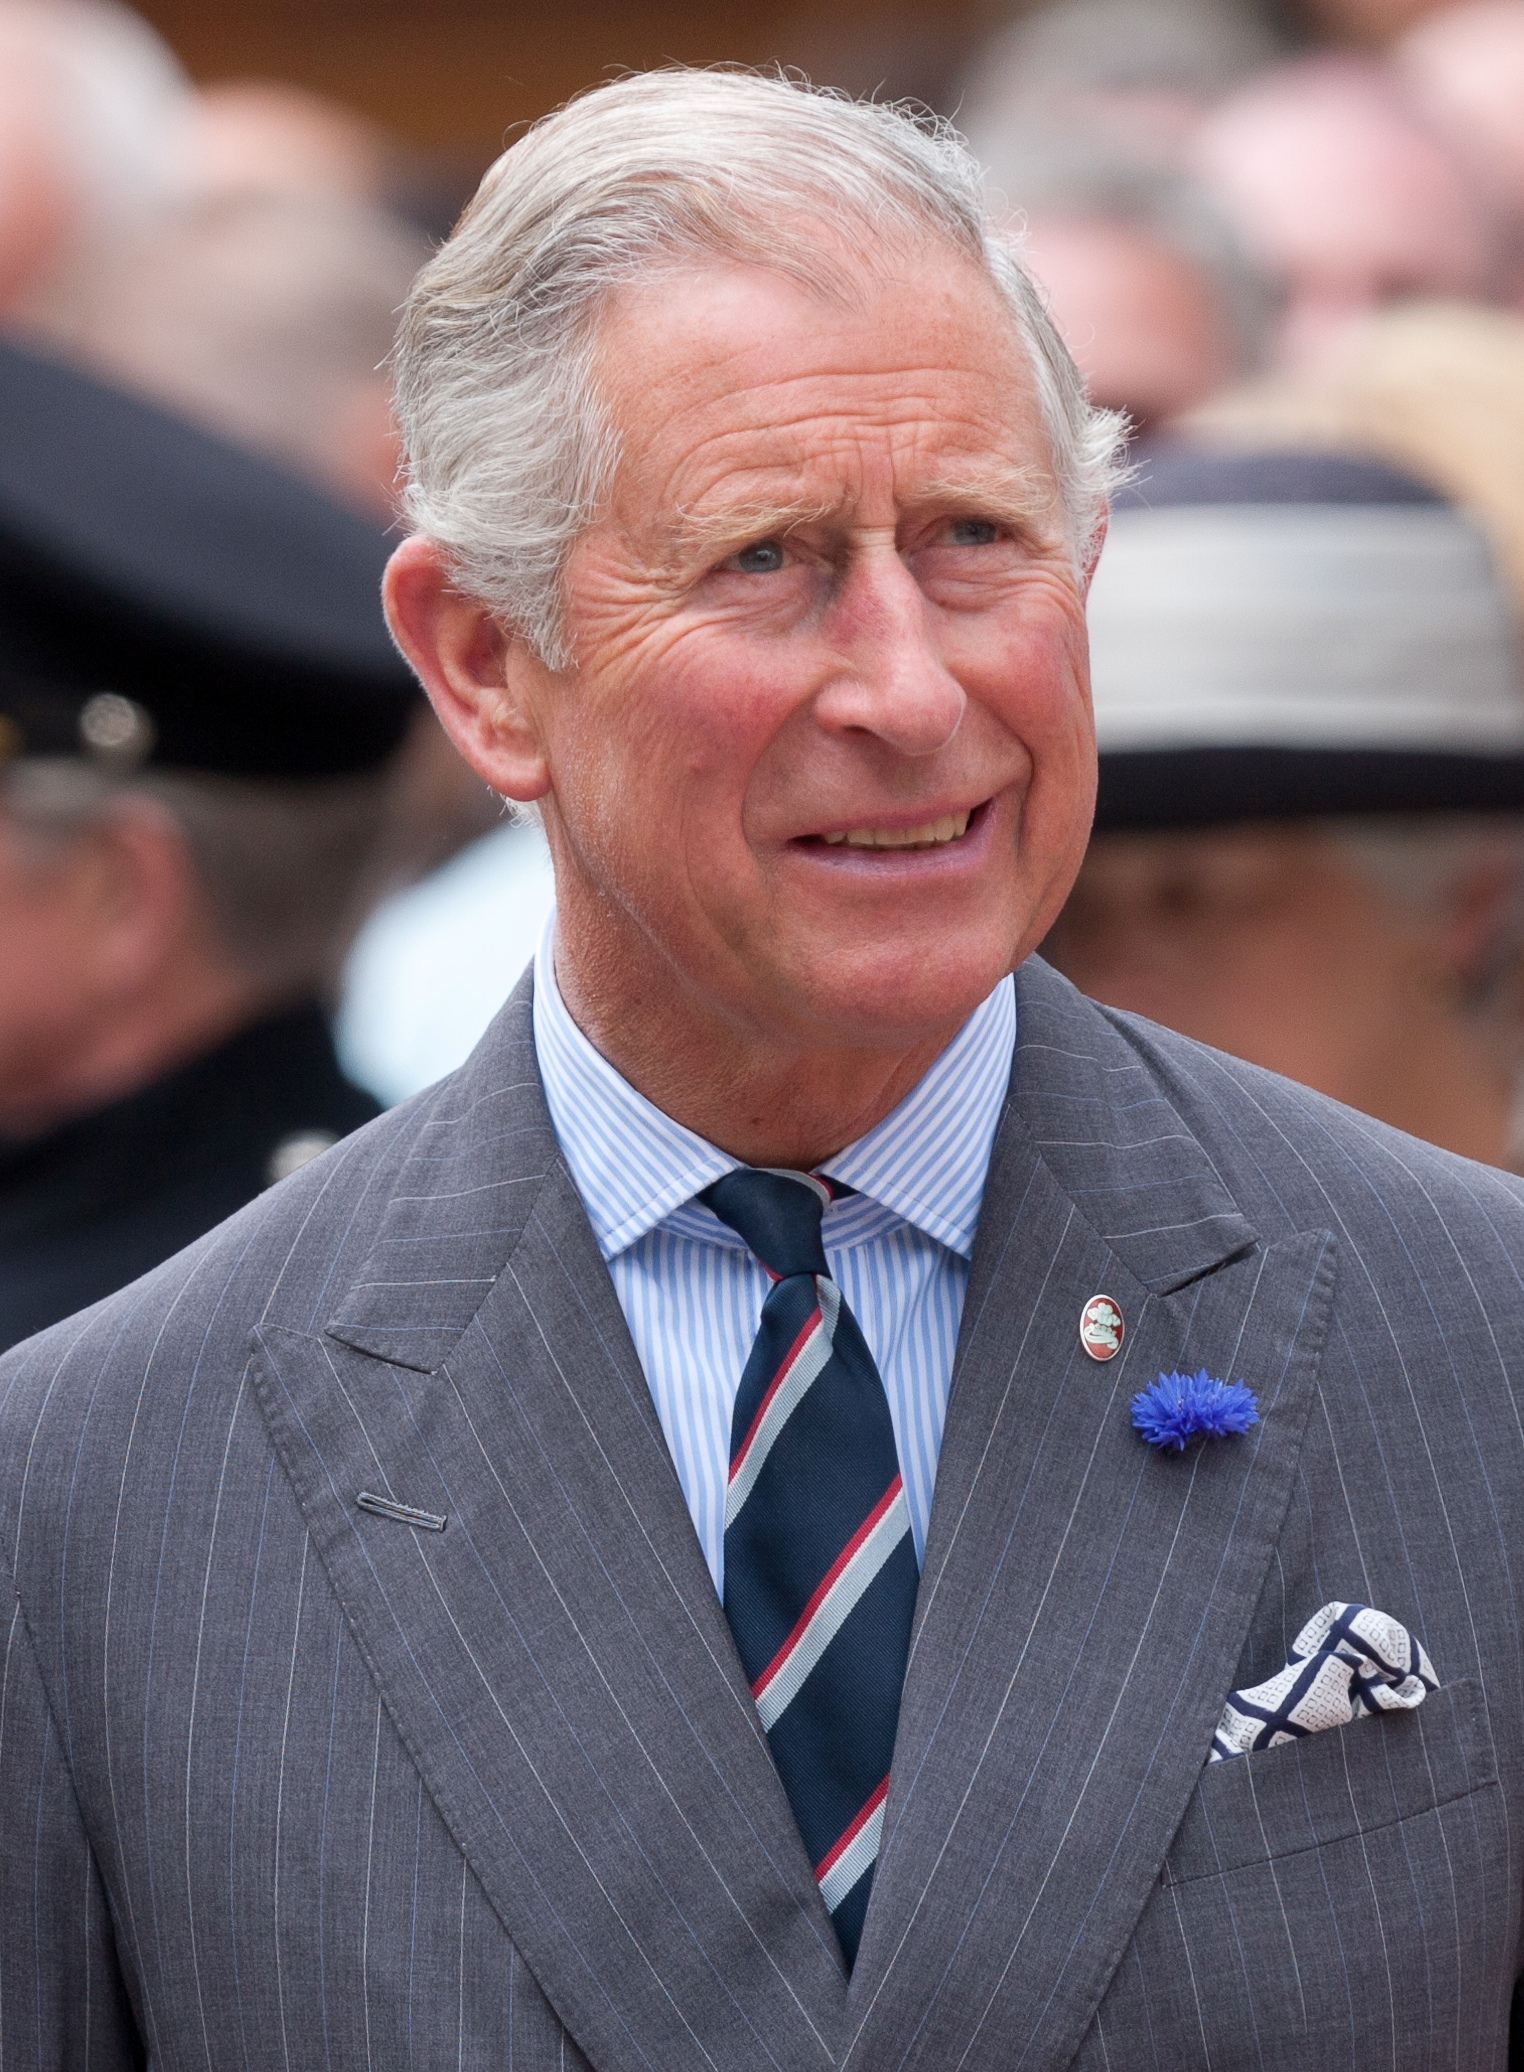 Prince Charles - the main heir to the British throne